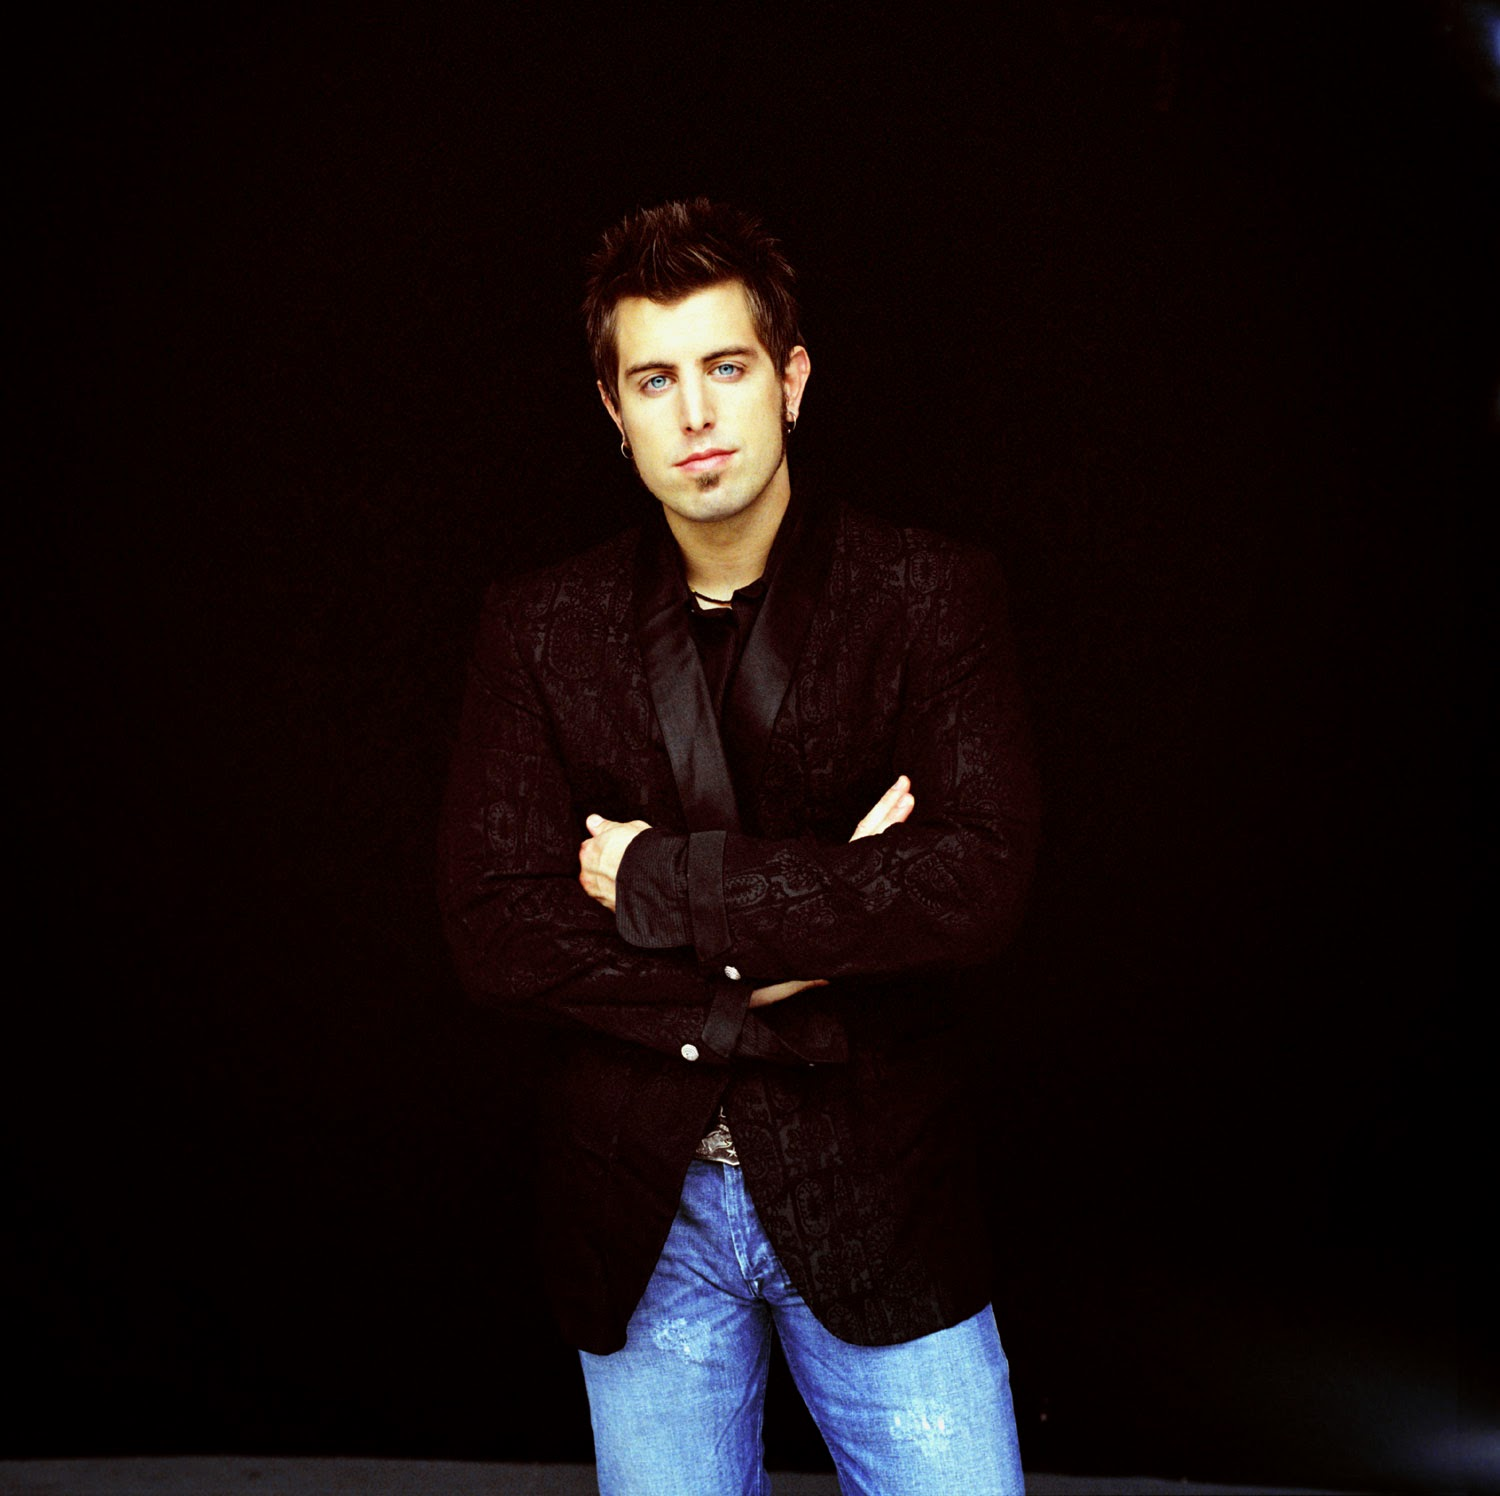 Jeremy Camp - I Will Follow (Deluxe Edition) 2015 Biography and History